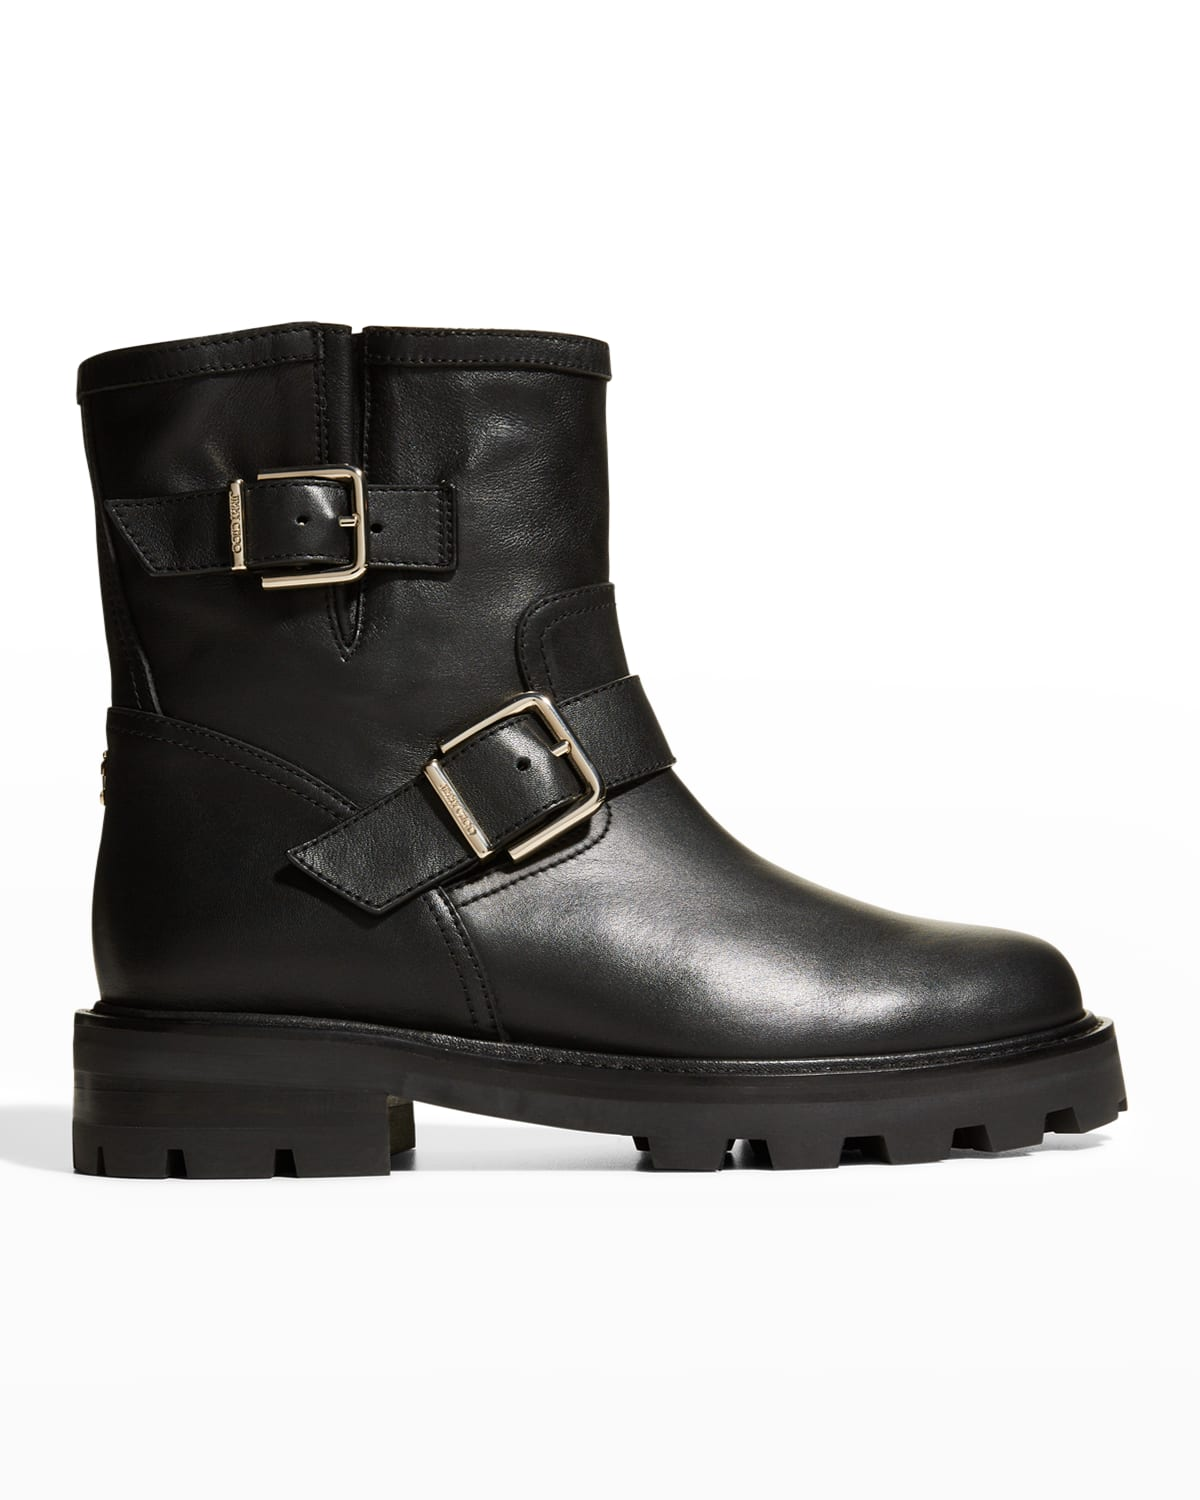 Youth II Leather Short Biker Boots